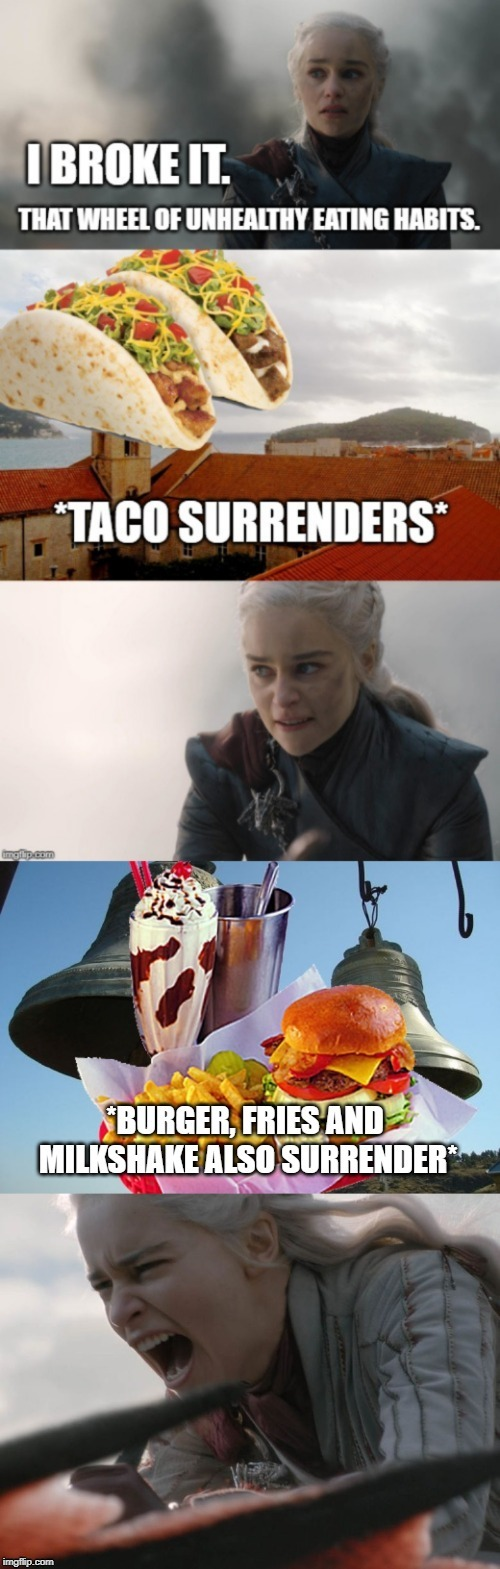 *surrendering harder* | image tagged in daenerys targaryen,daenerys,game of thrones,season 8,surrender,food | made w/ Imgflip meme maker